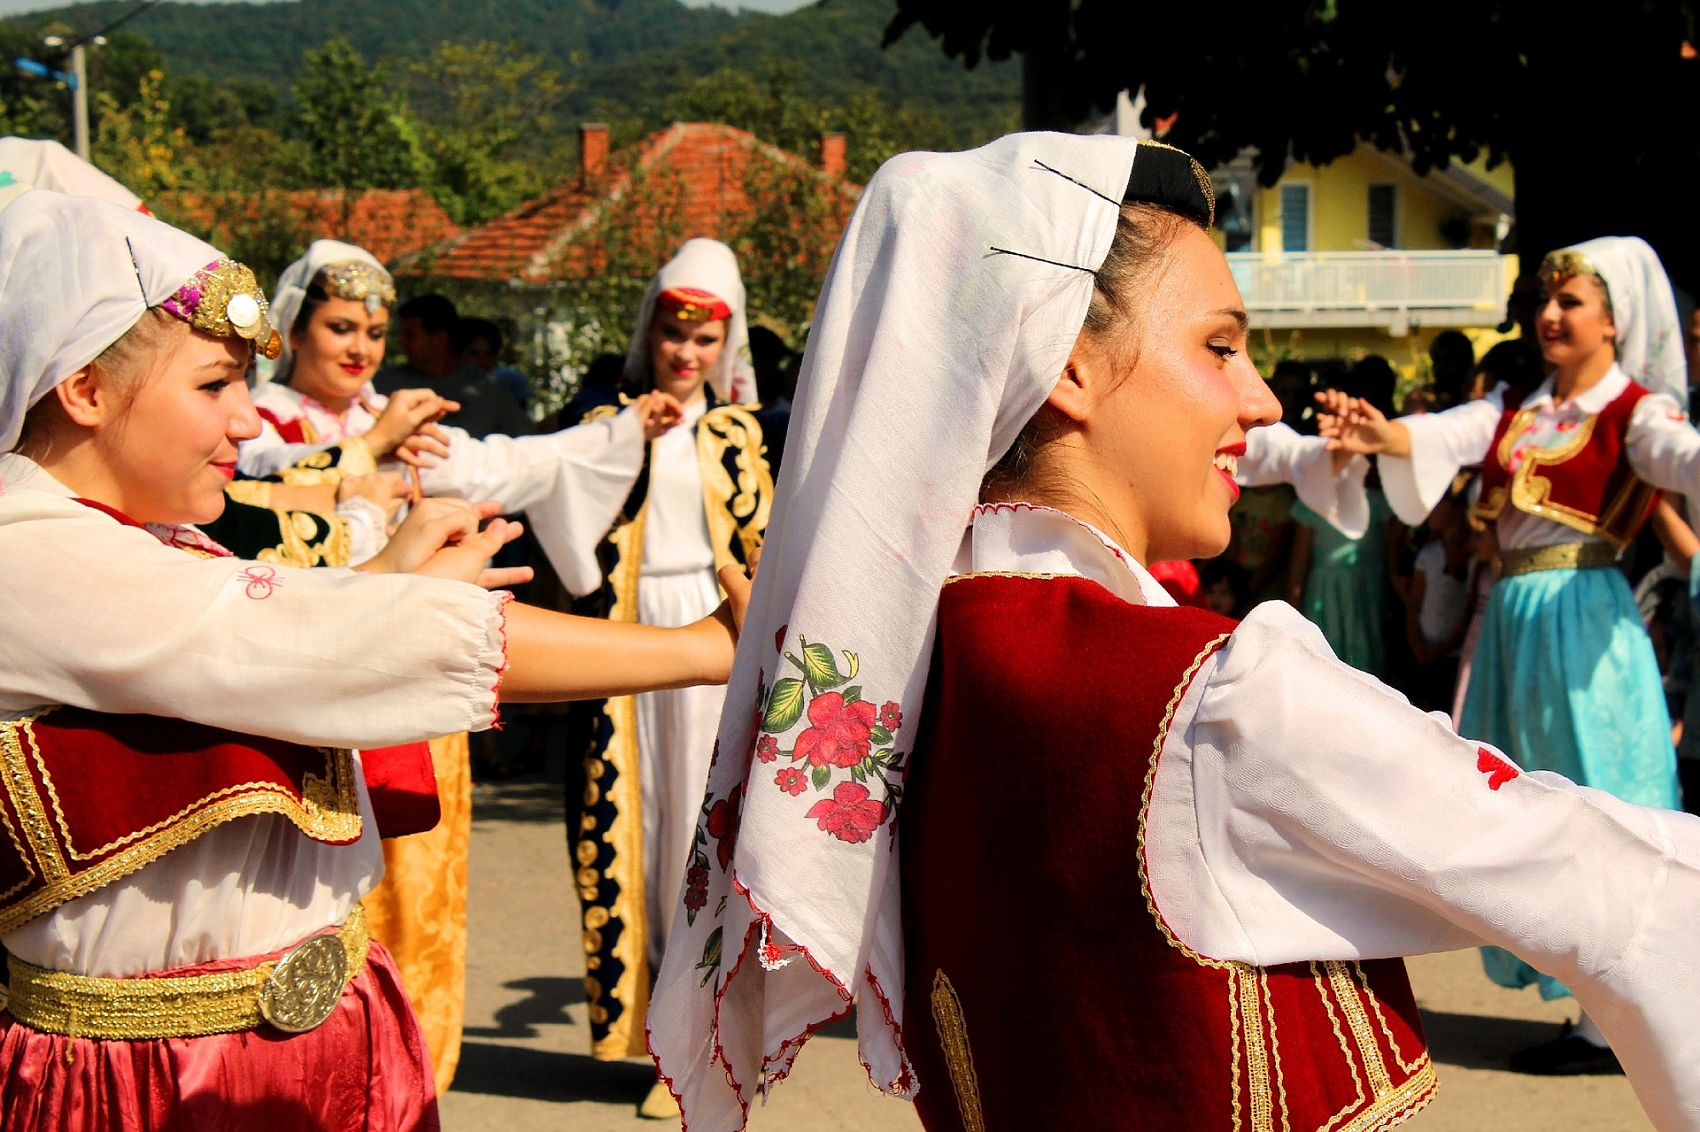 Beautifull girls dancing national dance  in Bosnia,Balkan